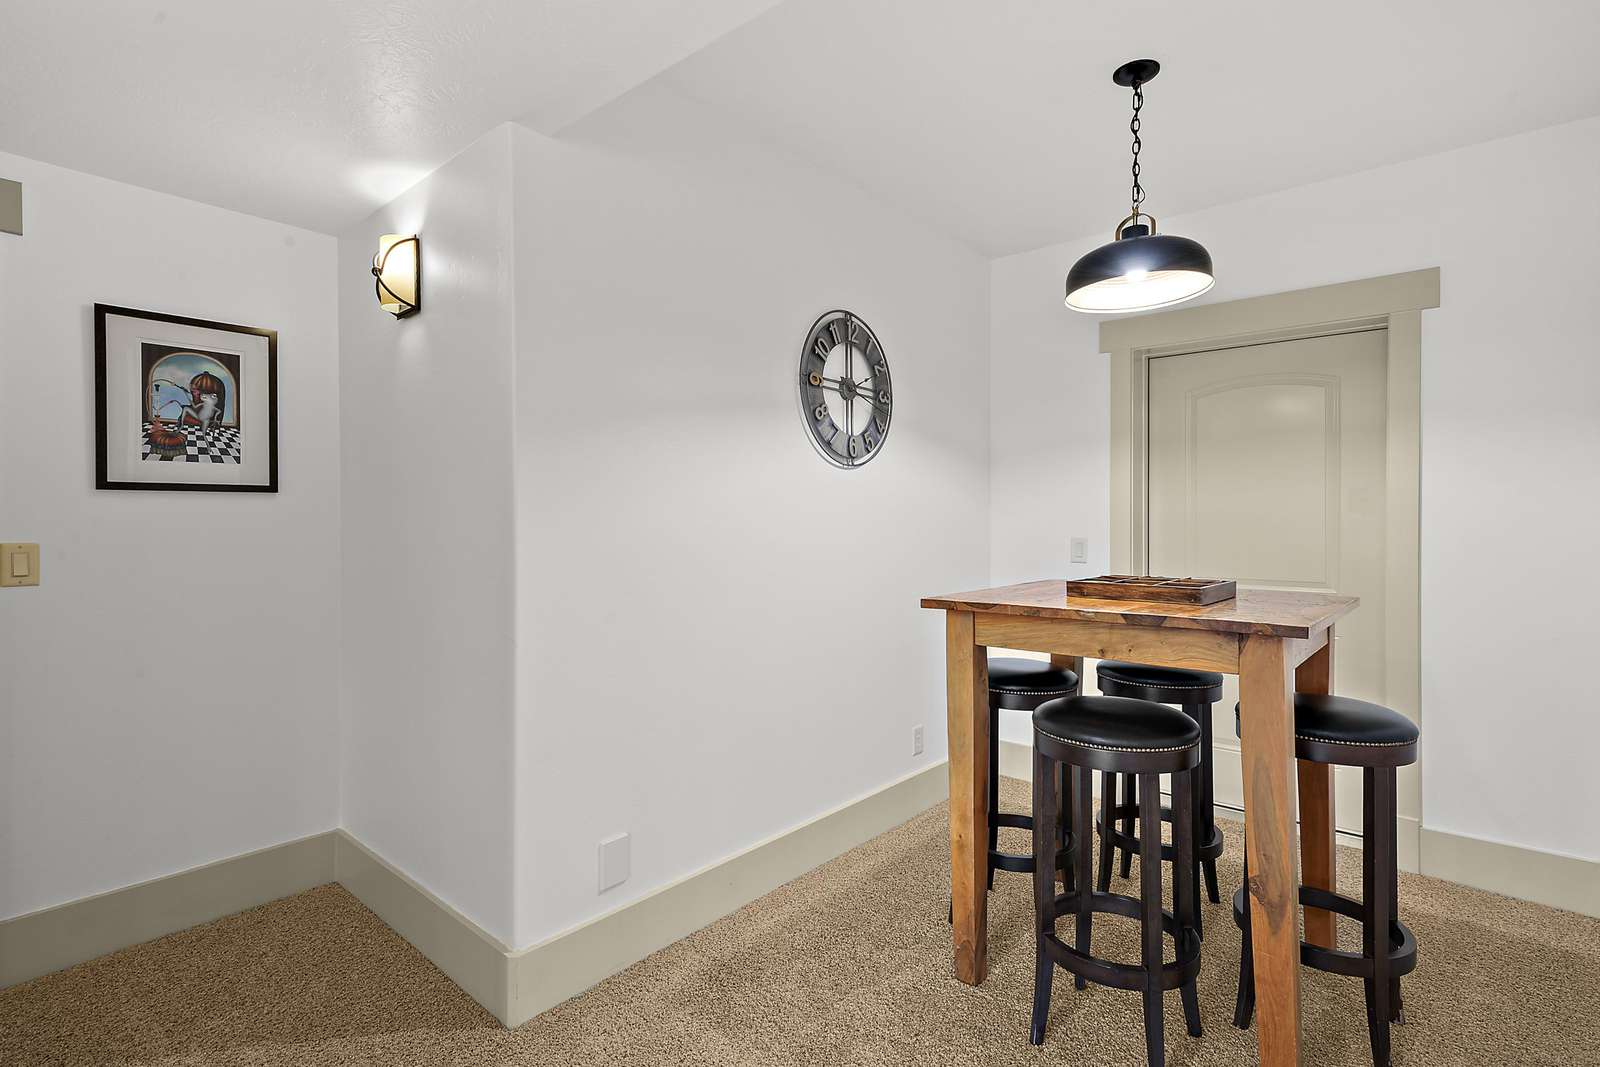 Extra nook for dining and games